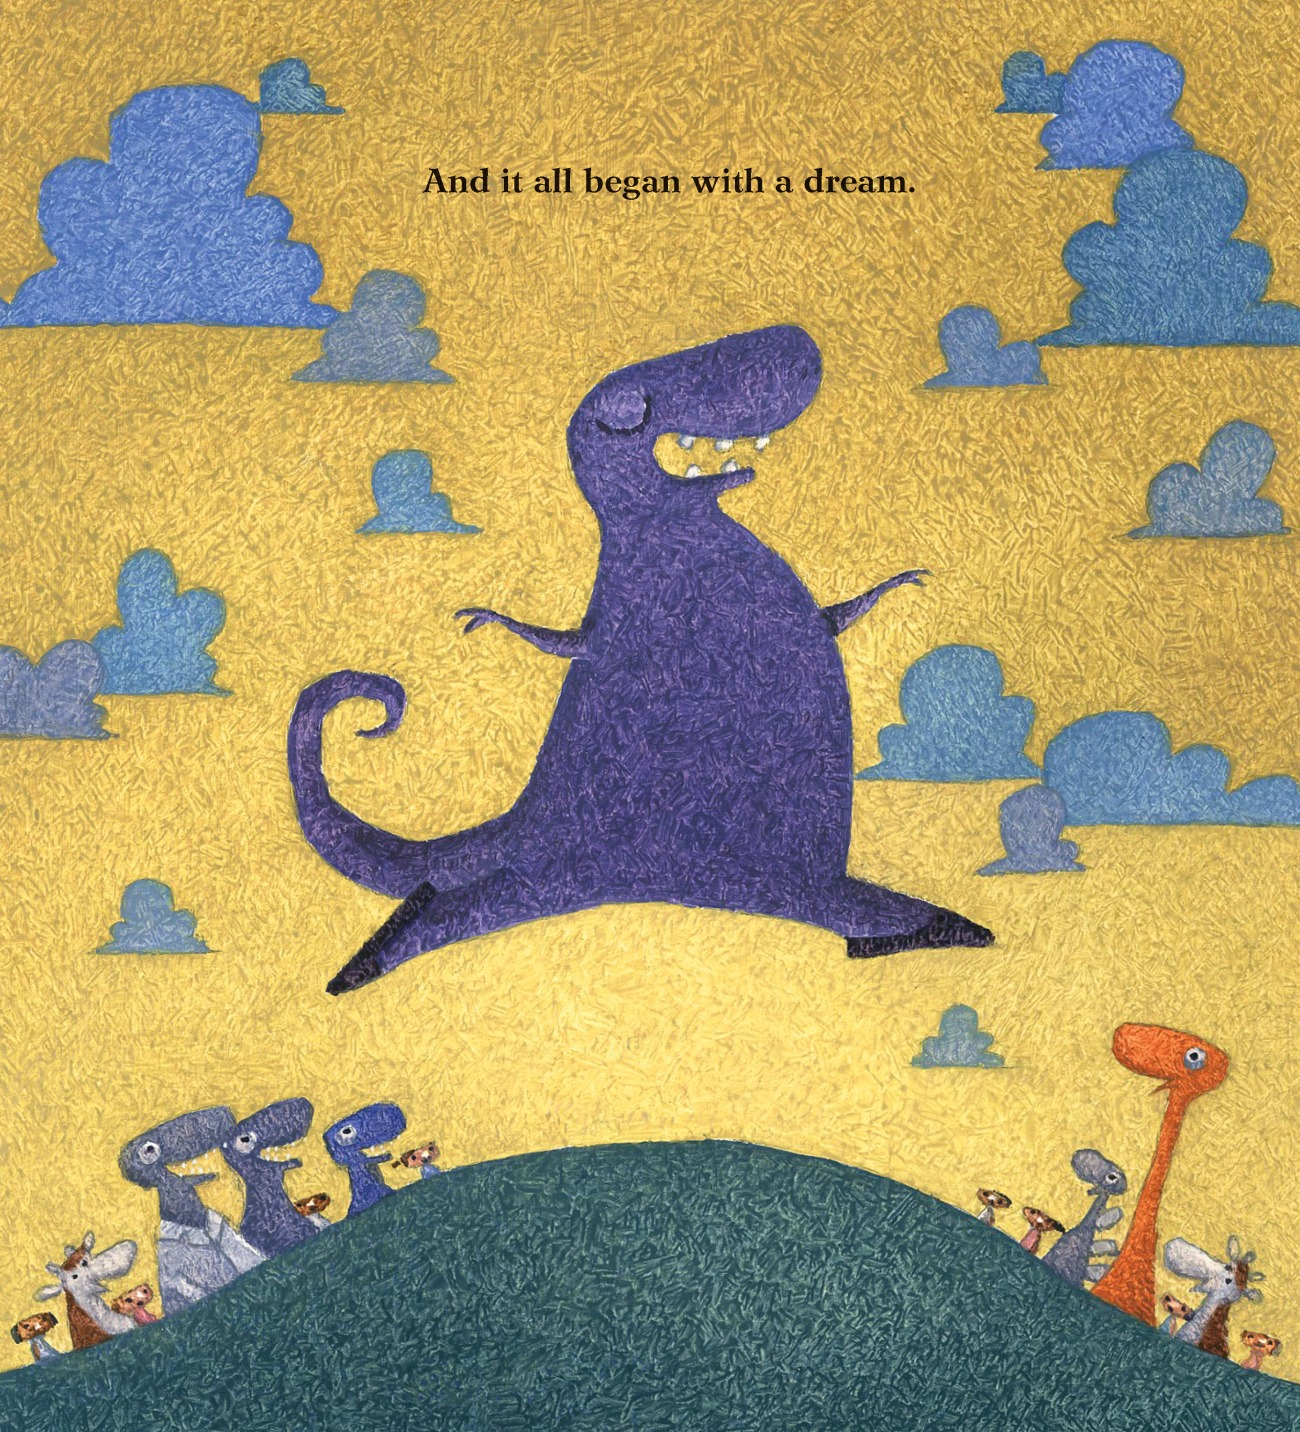 EVEN DANCING DINOSAURS HAVE SOMETHING IMPORTANT TO SAY by James Howe